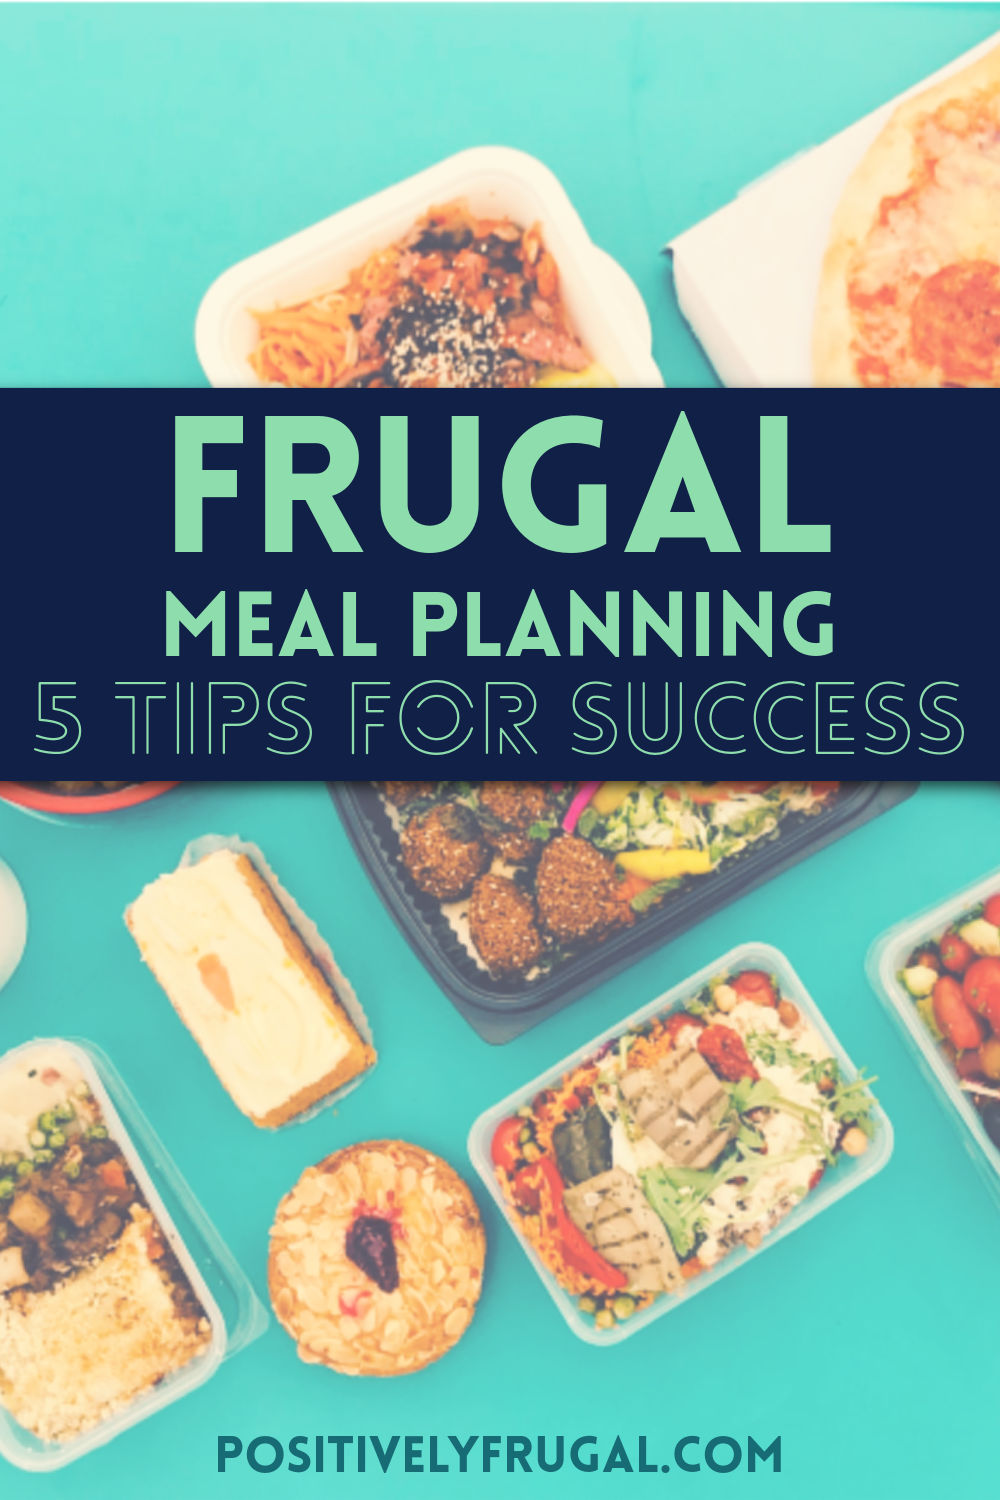 5 Tips for Frugal Meal Planning Success by PositivelyFrugal.com